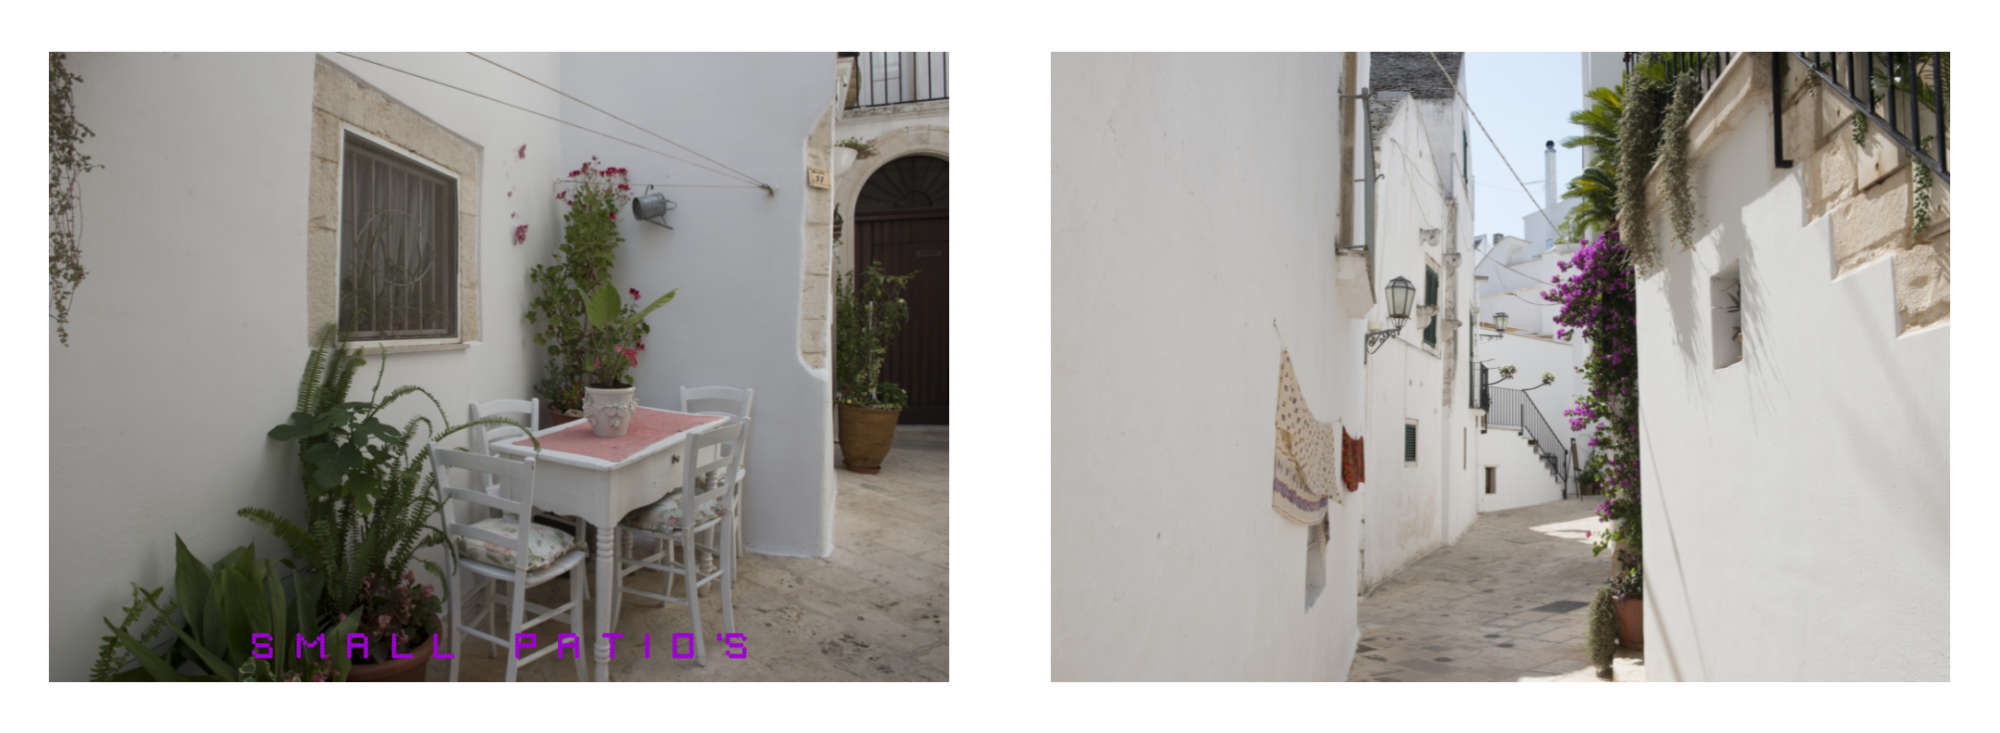 Puglia Album - Page 36: White furniture in a white patio – Page 37:  Whitewashed walls of a narrow lane